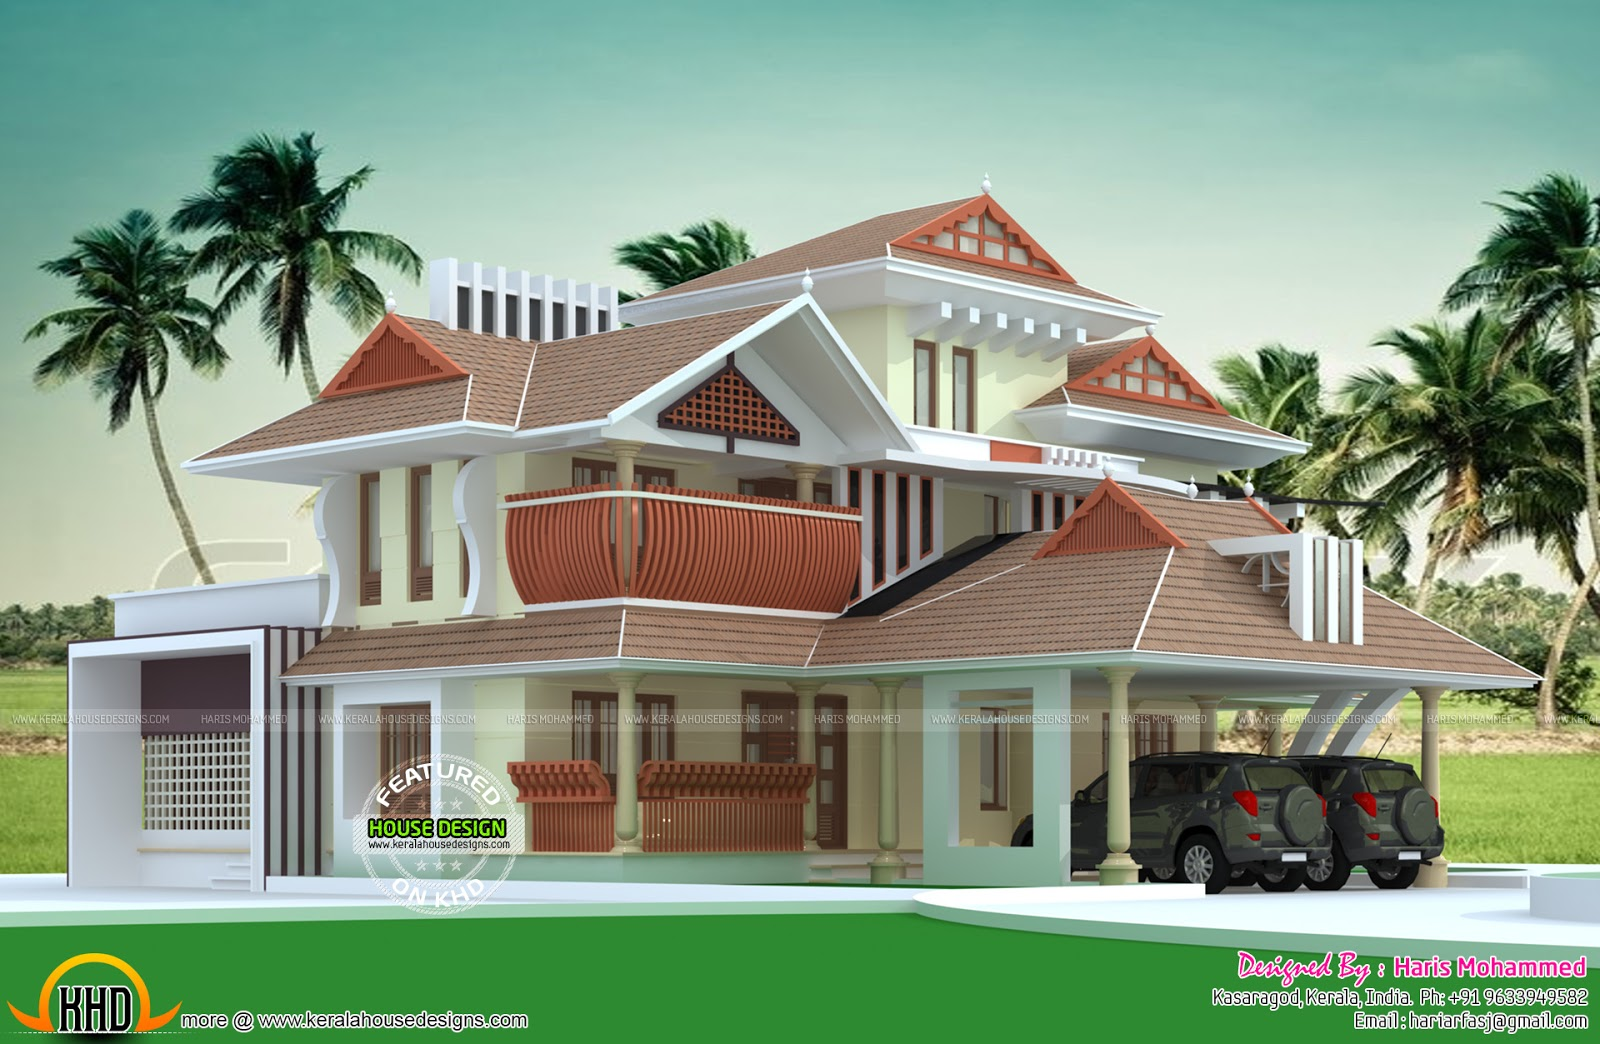 New traditional vastu based kerala home design kerala for New house design